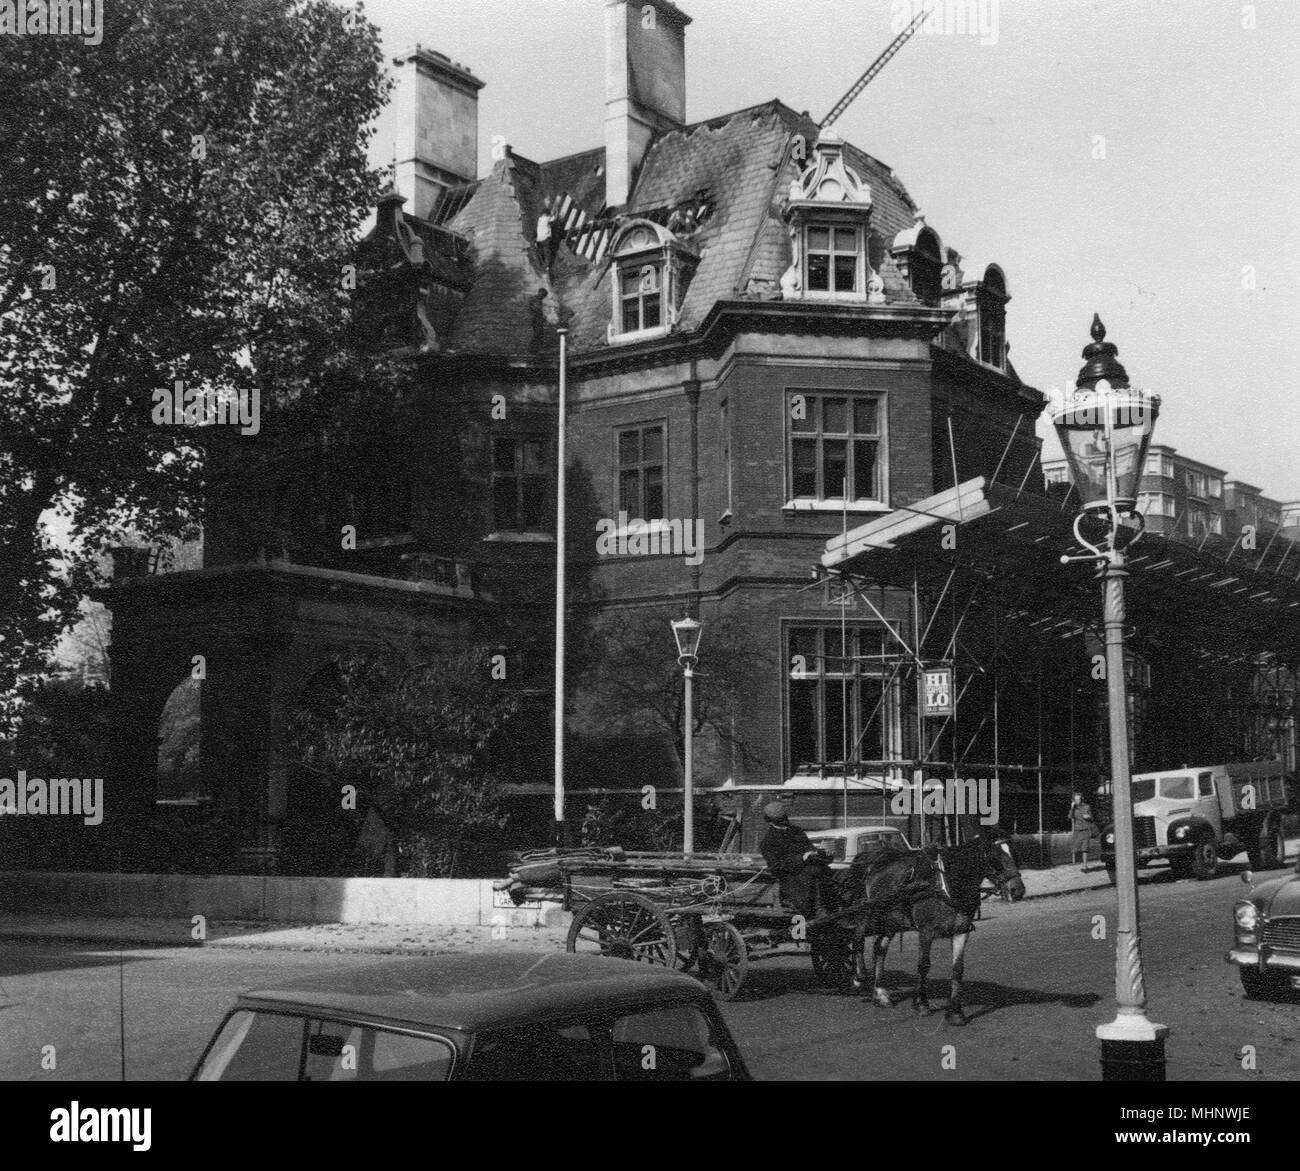 Moncorvo House, A large Victorian building at 67 Ennismore Gardens, Knightsbridge, London SW7 being demolished in September 1963. The building was designed by renowned Scottish Architect John Macvicar Anderson (1835-1915) and built 187880. Notable past residents of Moncorvo House were Albert George Sandeman, governor of the Bank of England, Henri d'Orleans, duke of Aumale, John Gretton, brewer and father of John Gretton, 1st Baron Gretton and Arthur Graham Glasgow, American engineer and industrialist.     Date: 1963 Stock Photo